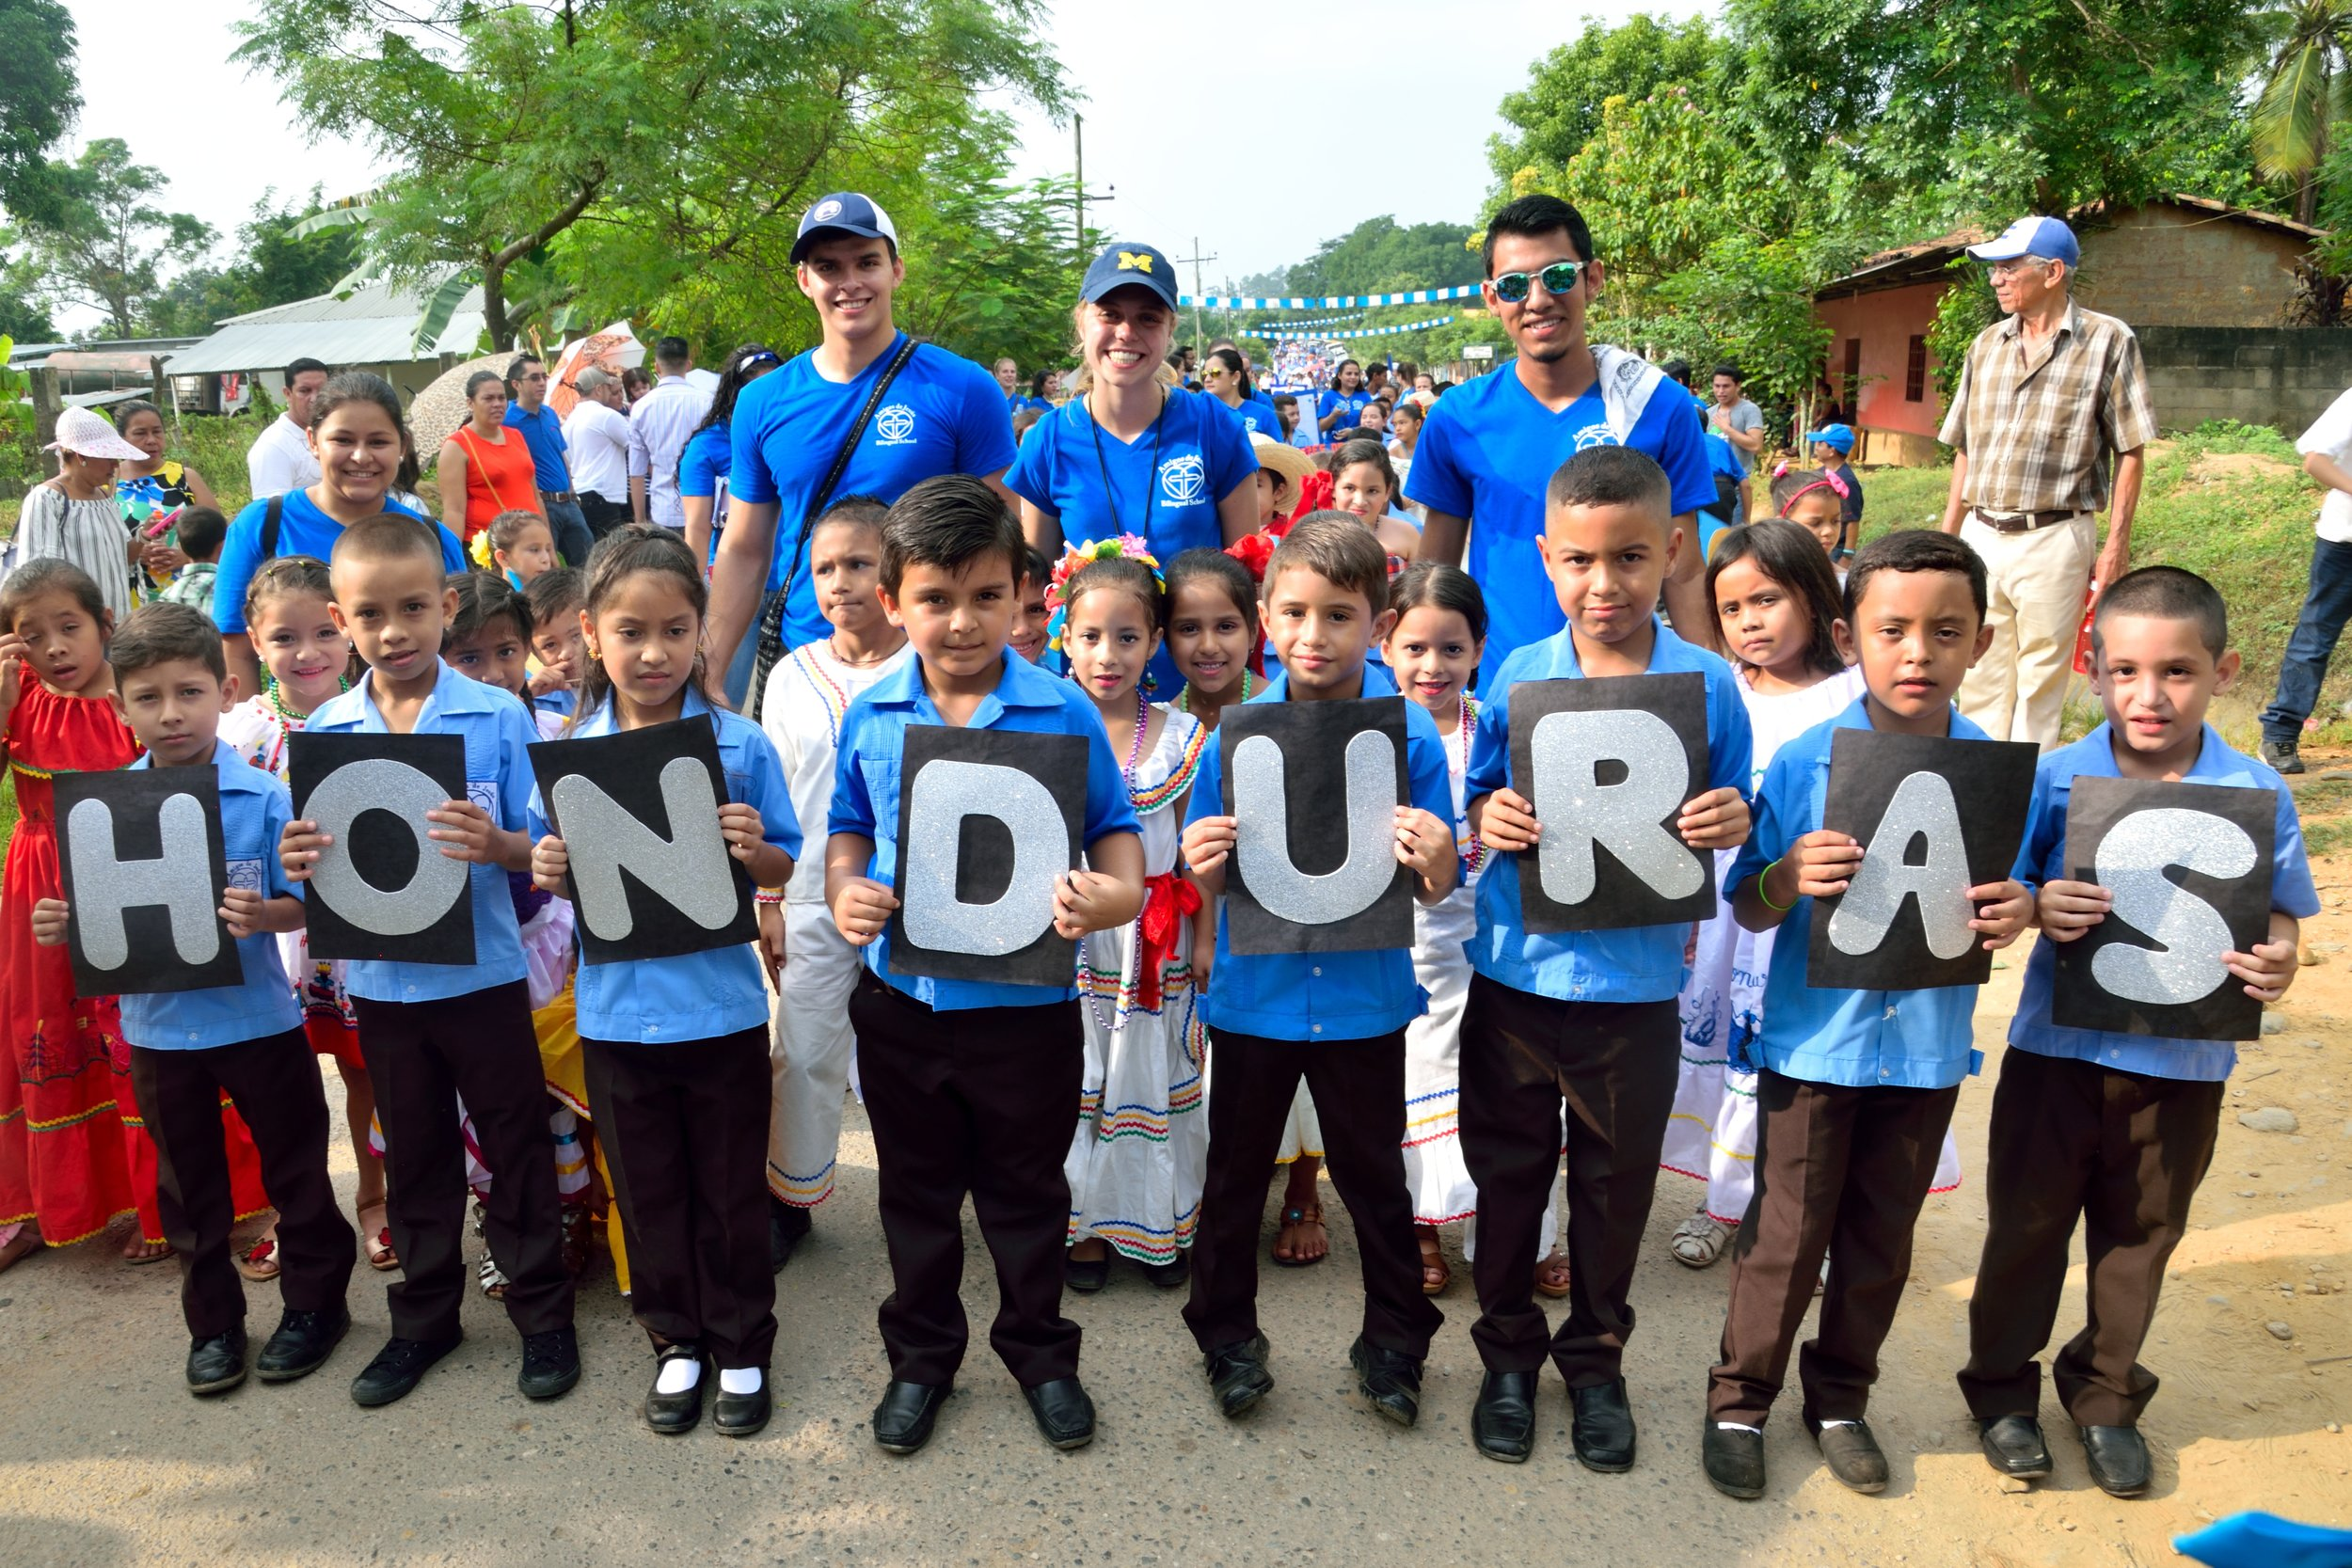 Profe Carlos, pictured in the back row on the left, with the first grade students and teachers during the Honduran Independence Day Parade in September 2017.